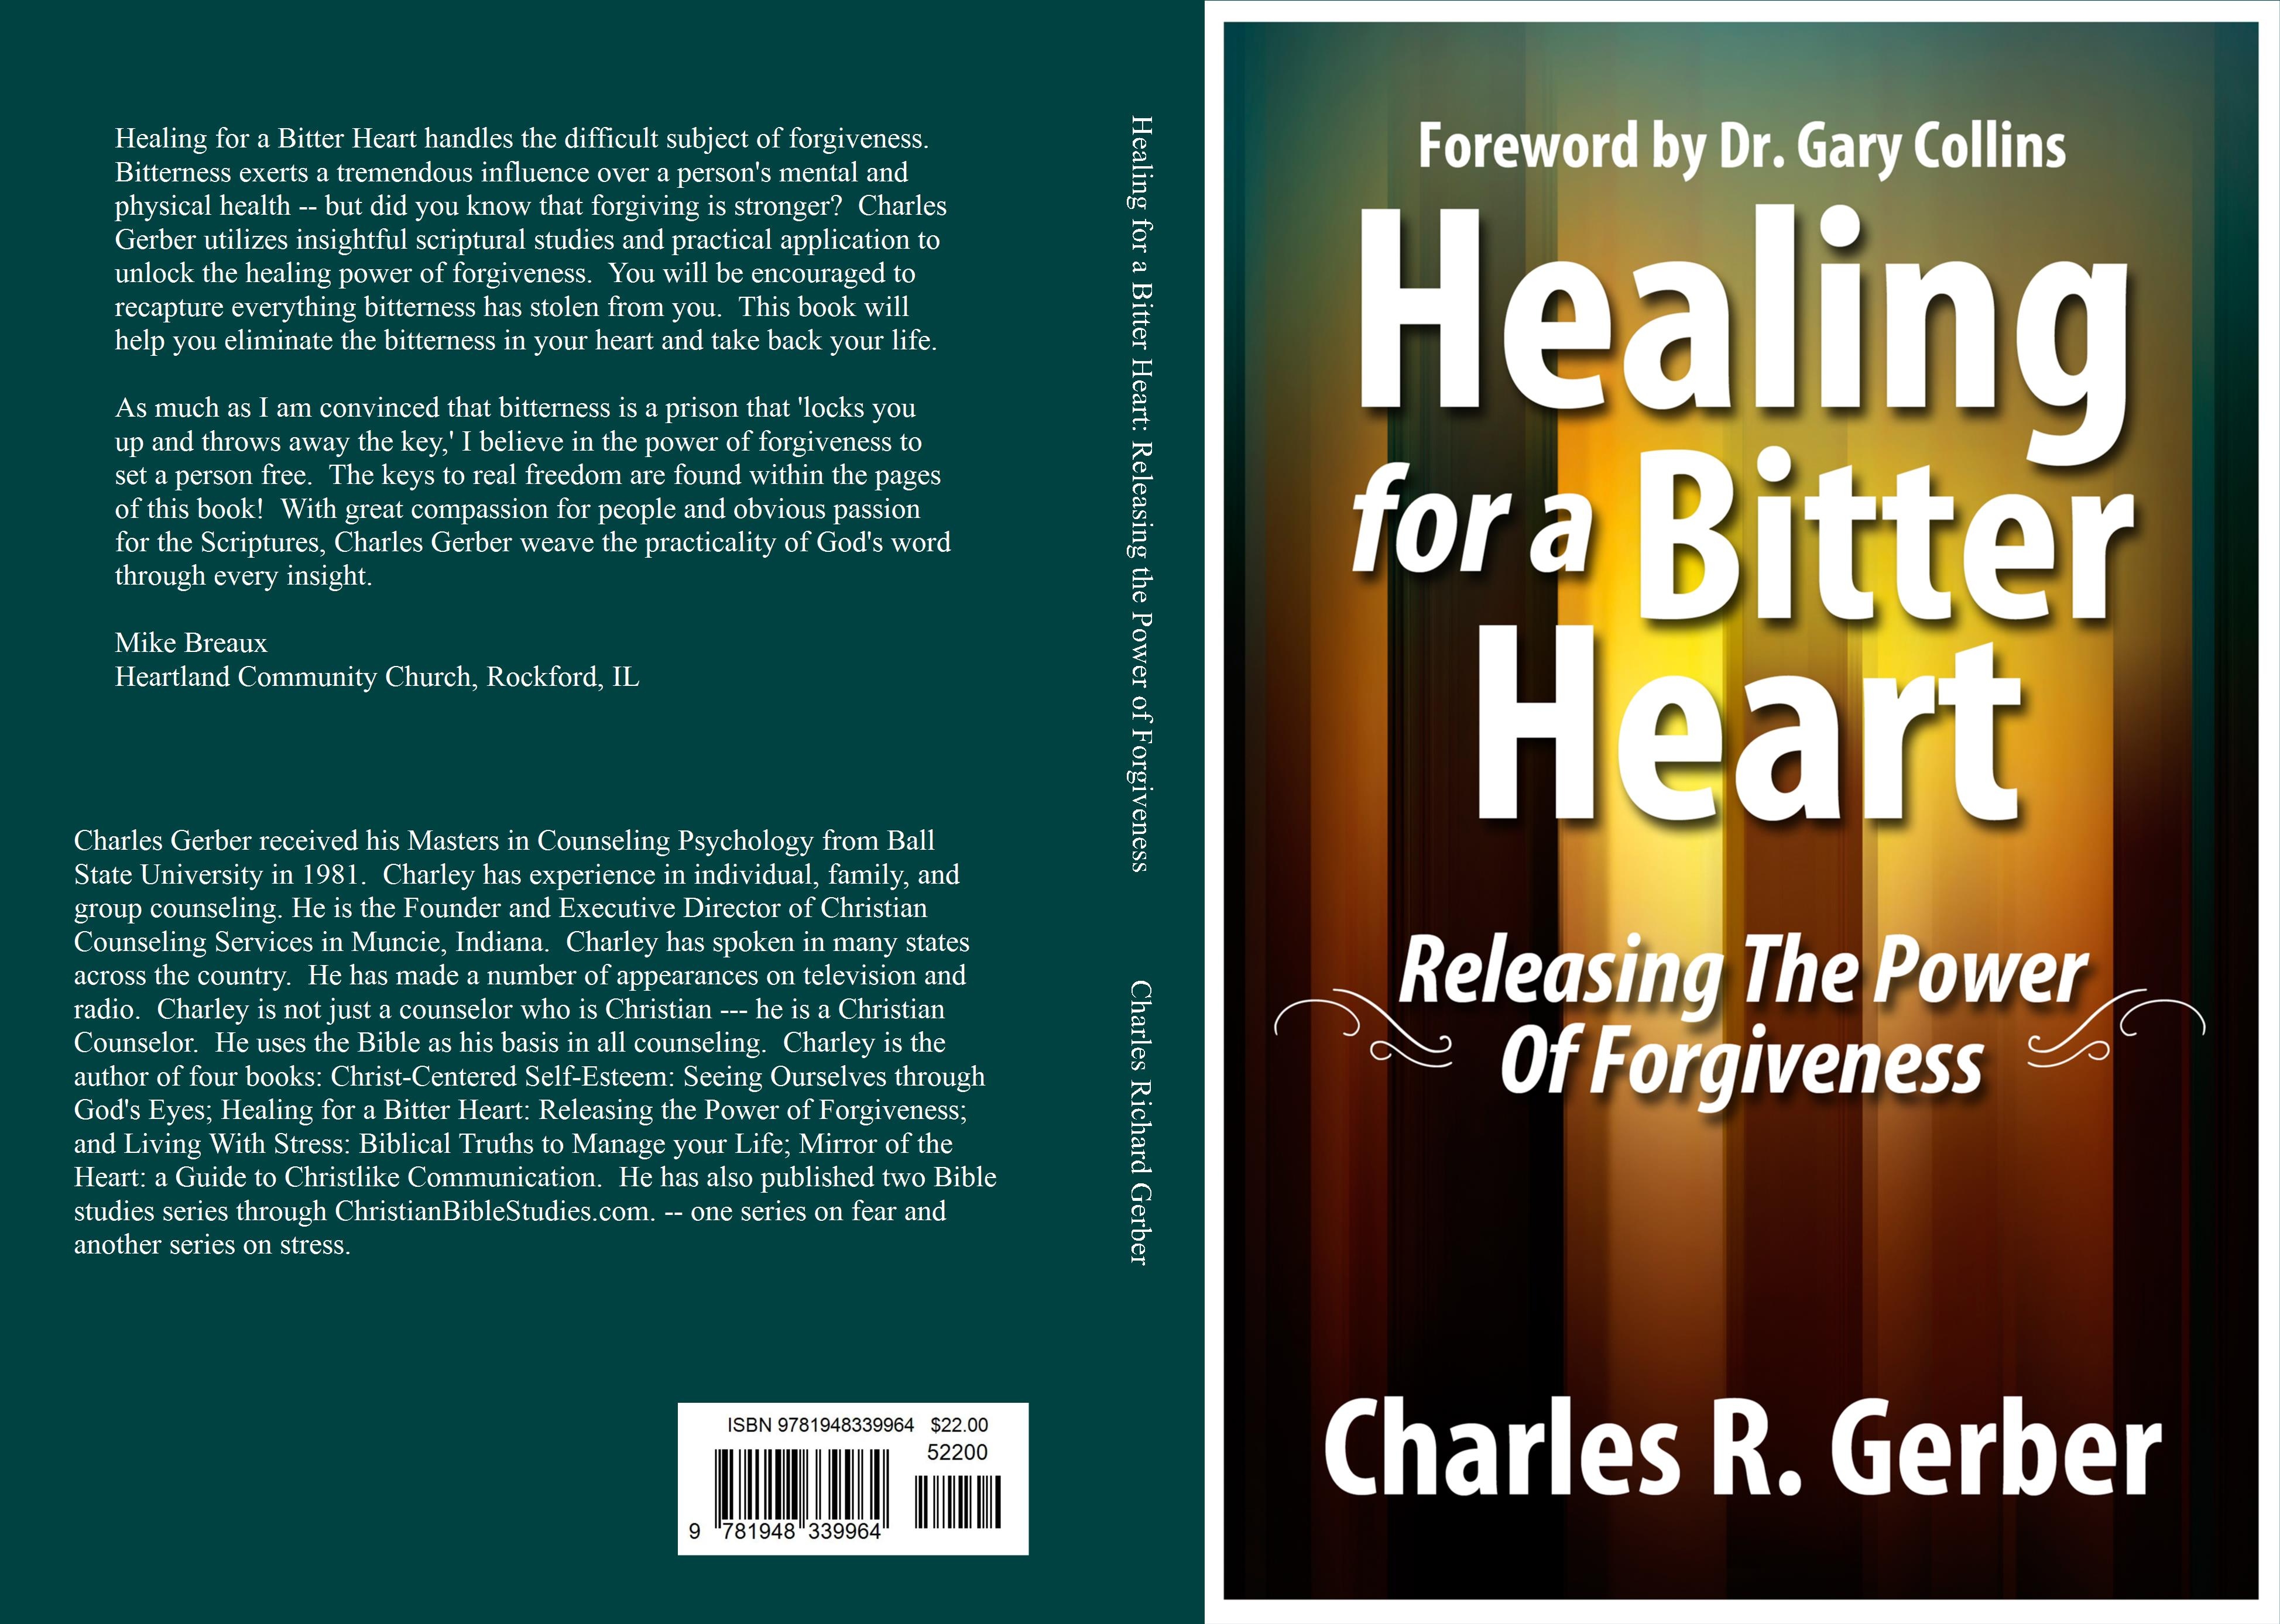 Healing for a Bitter Heart: Releasing the Power of Forgiveness cover image